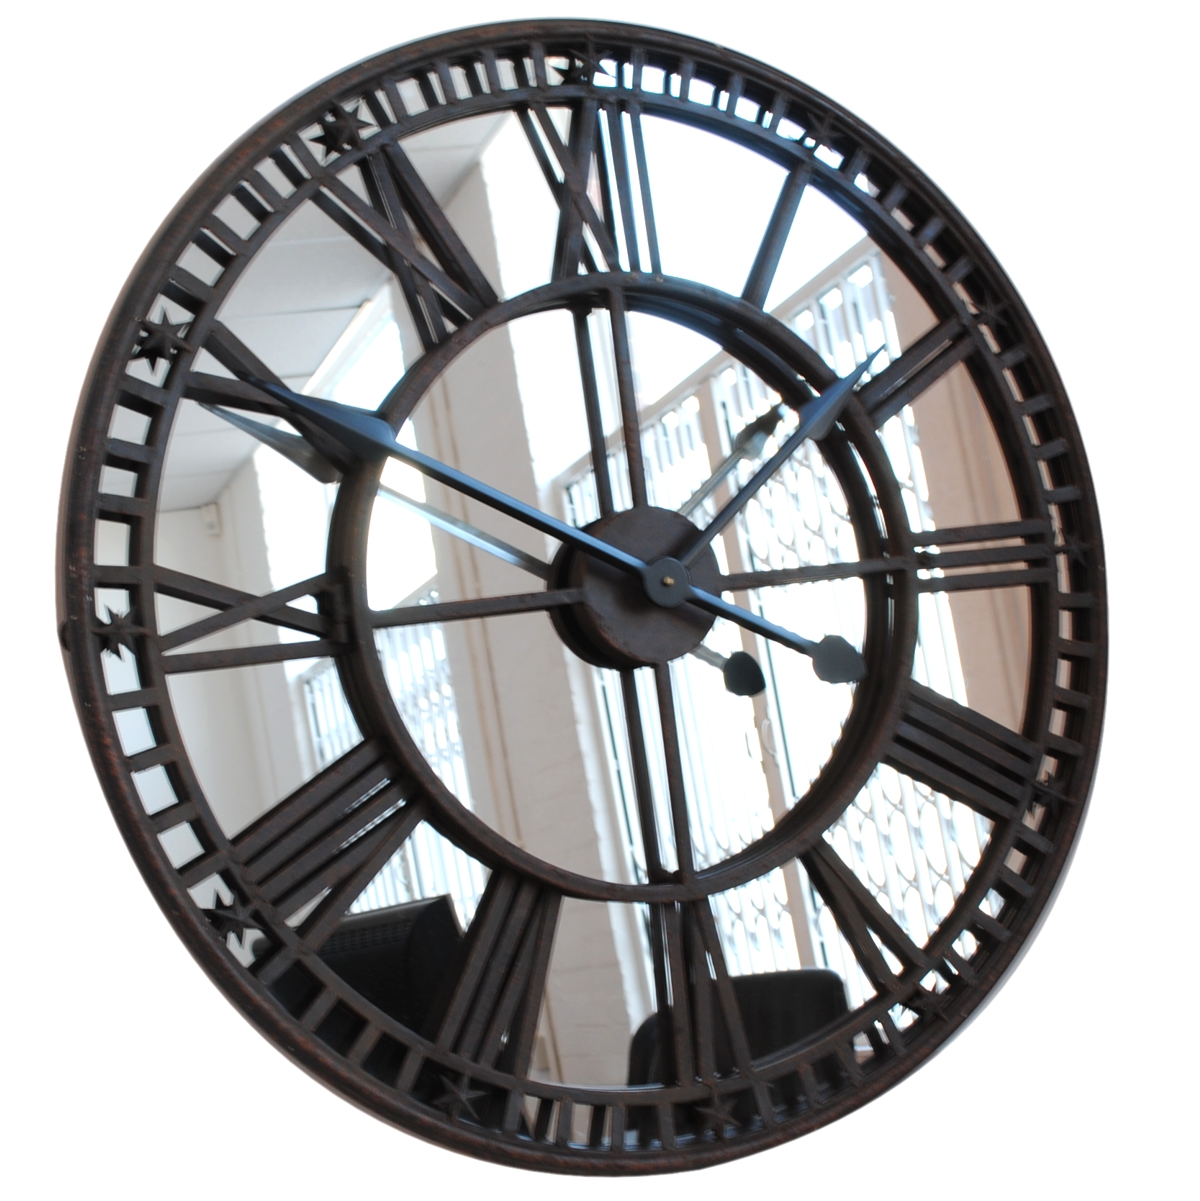 Antique mirror iron roman skeleton wall clock - Large roman numeral wall clocks ...